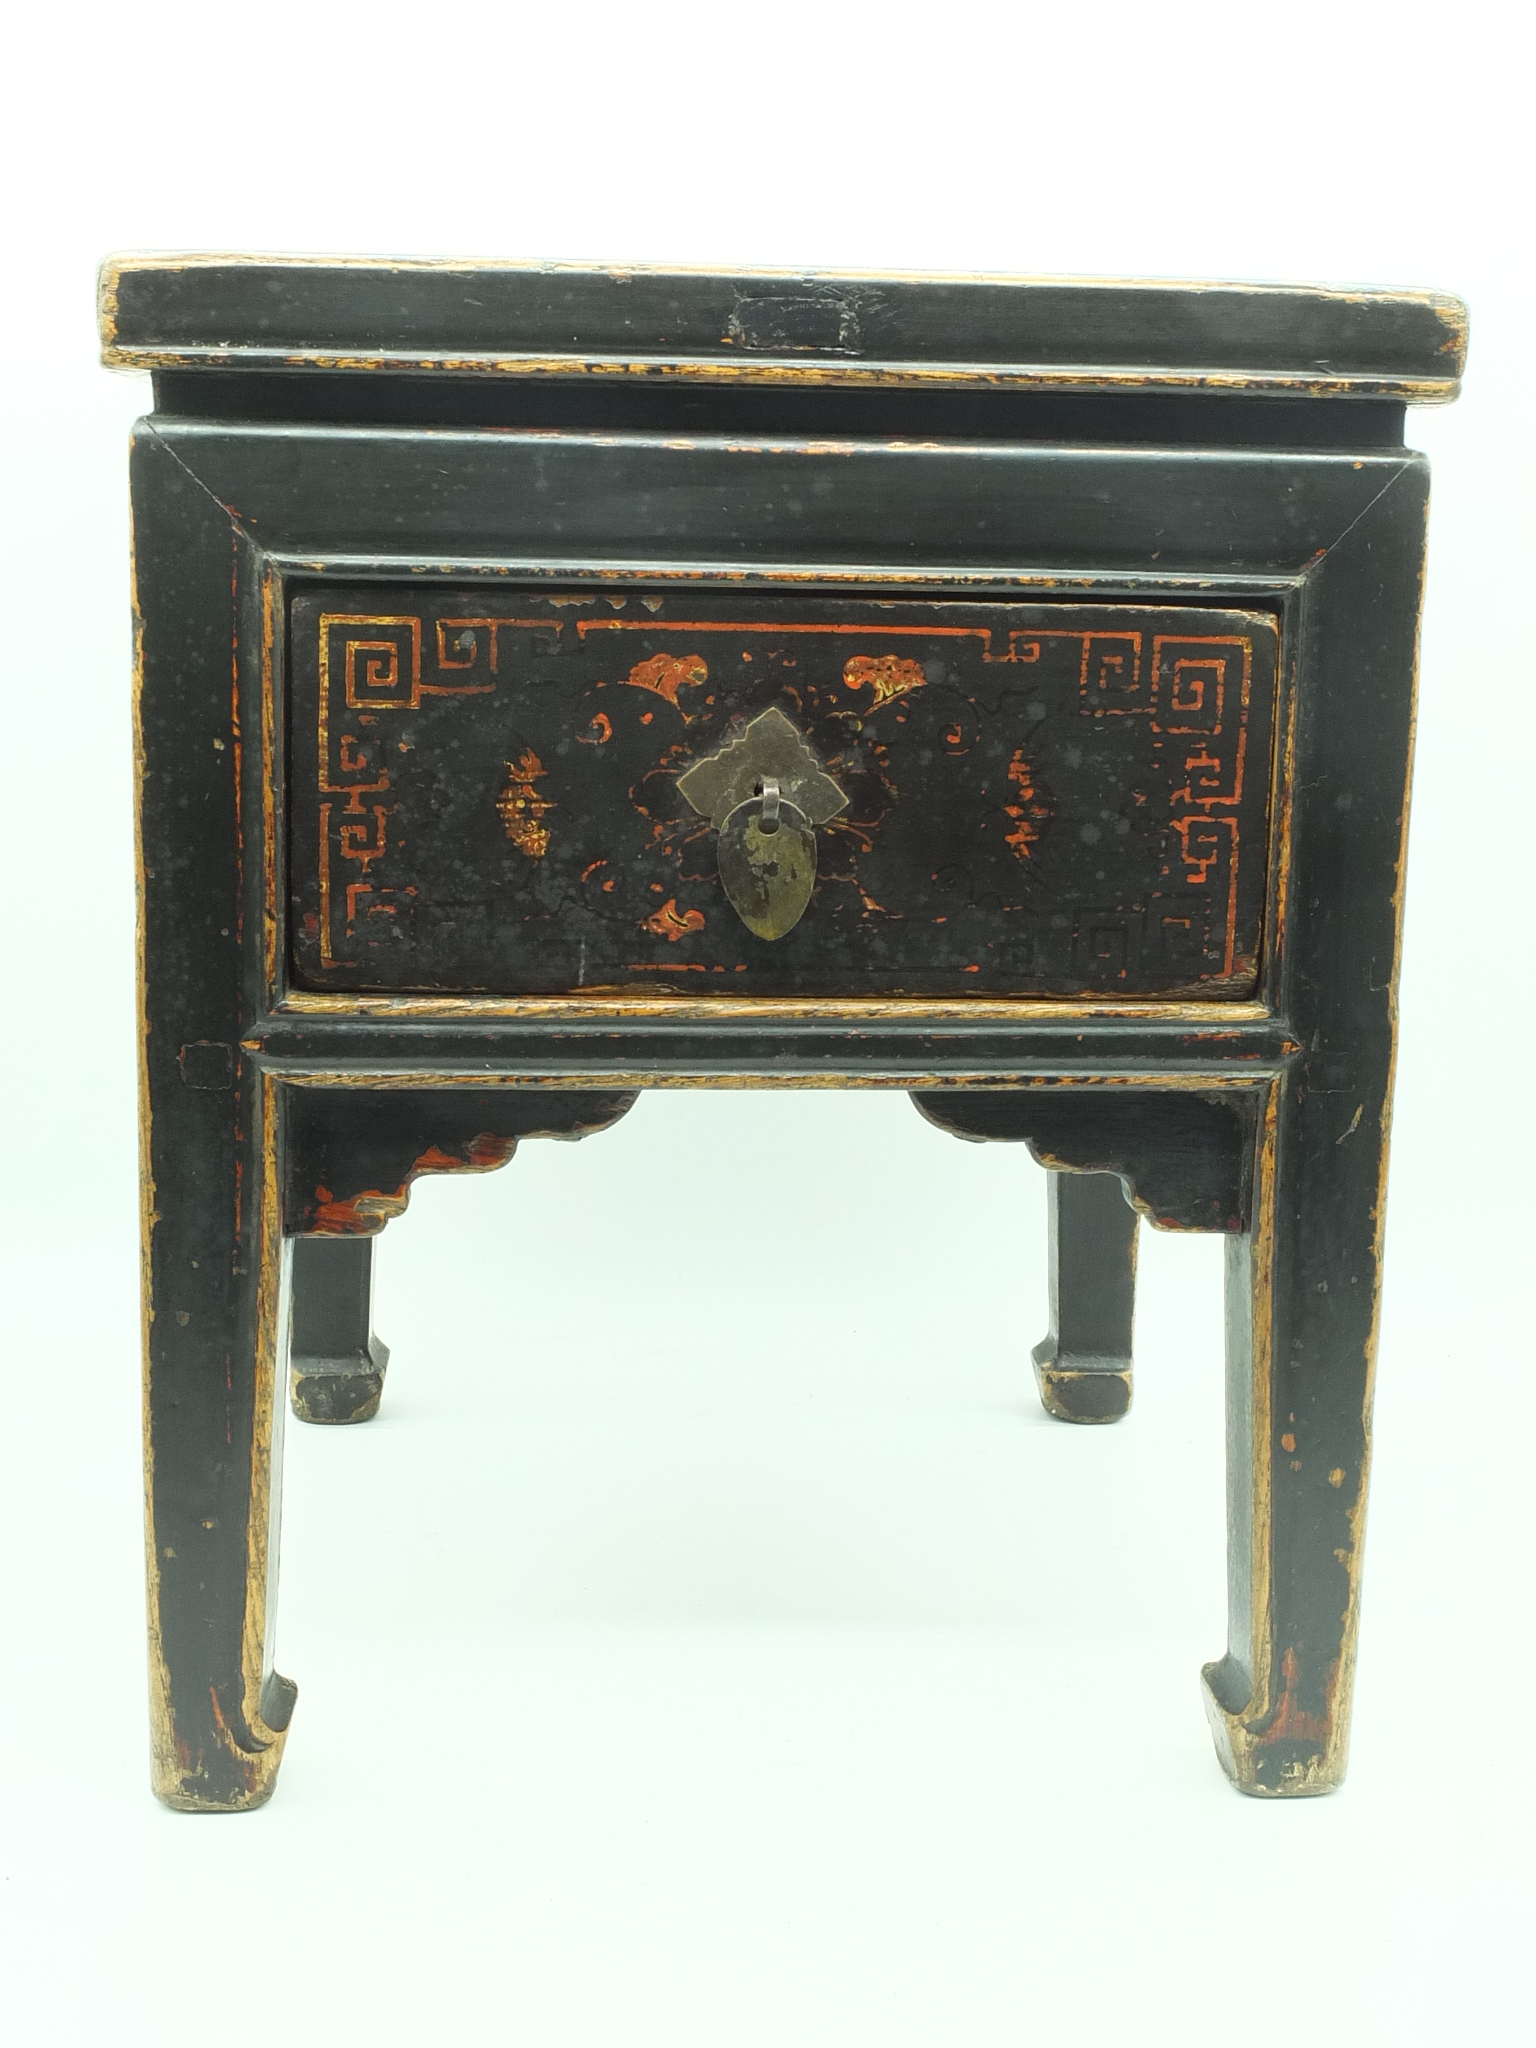 'Small Chinese Black Lacquered Elm Square Kang Table'